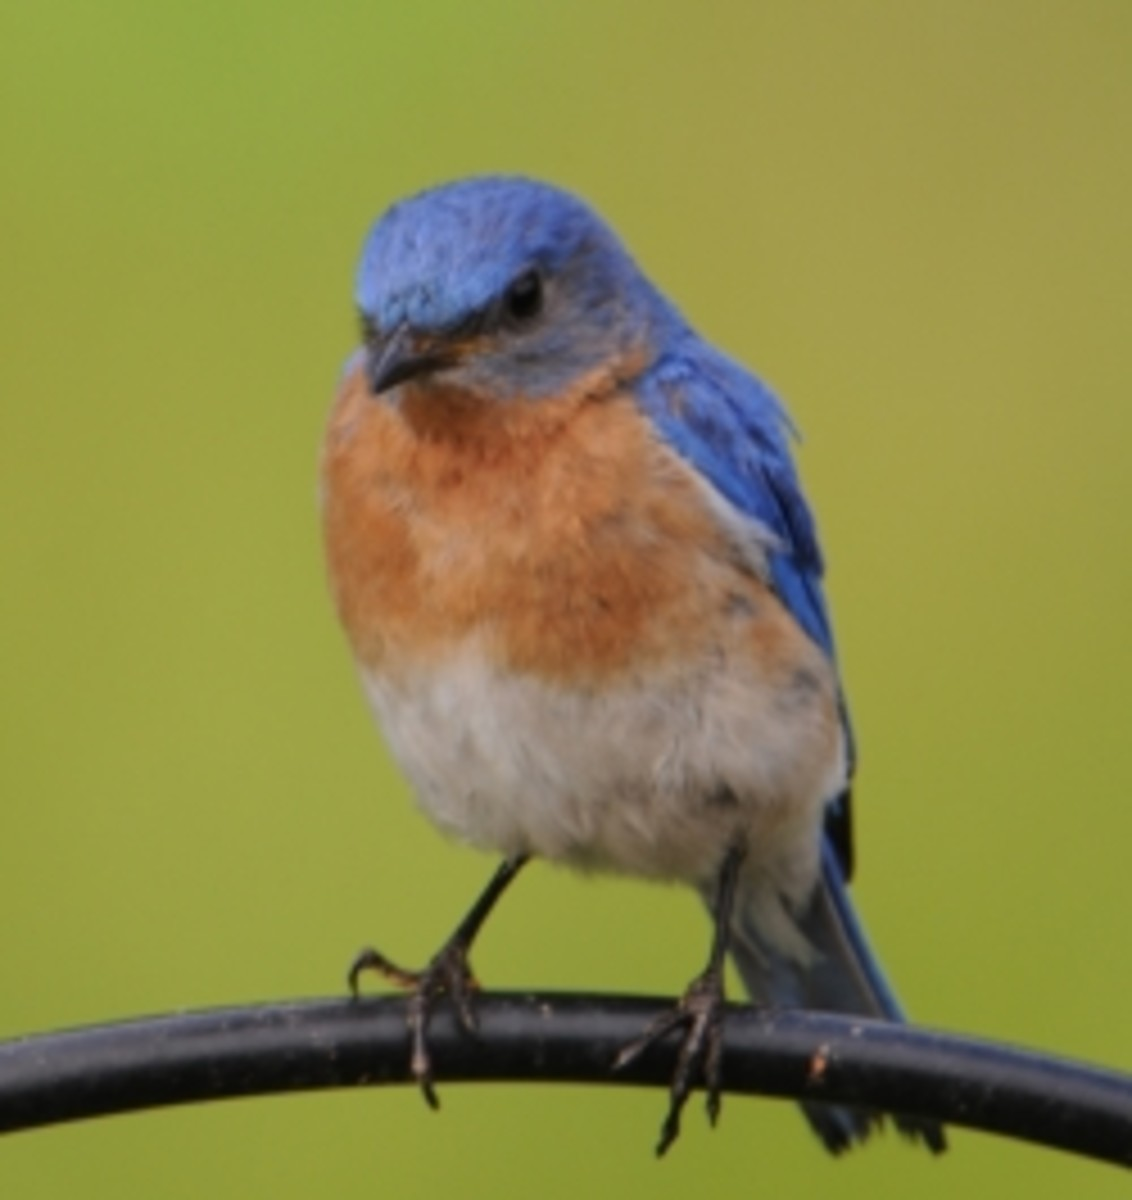 How to Attract Eastern Bluebirds With the Right Foods, Plants and Nest Boxes